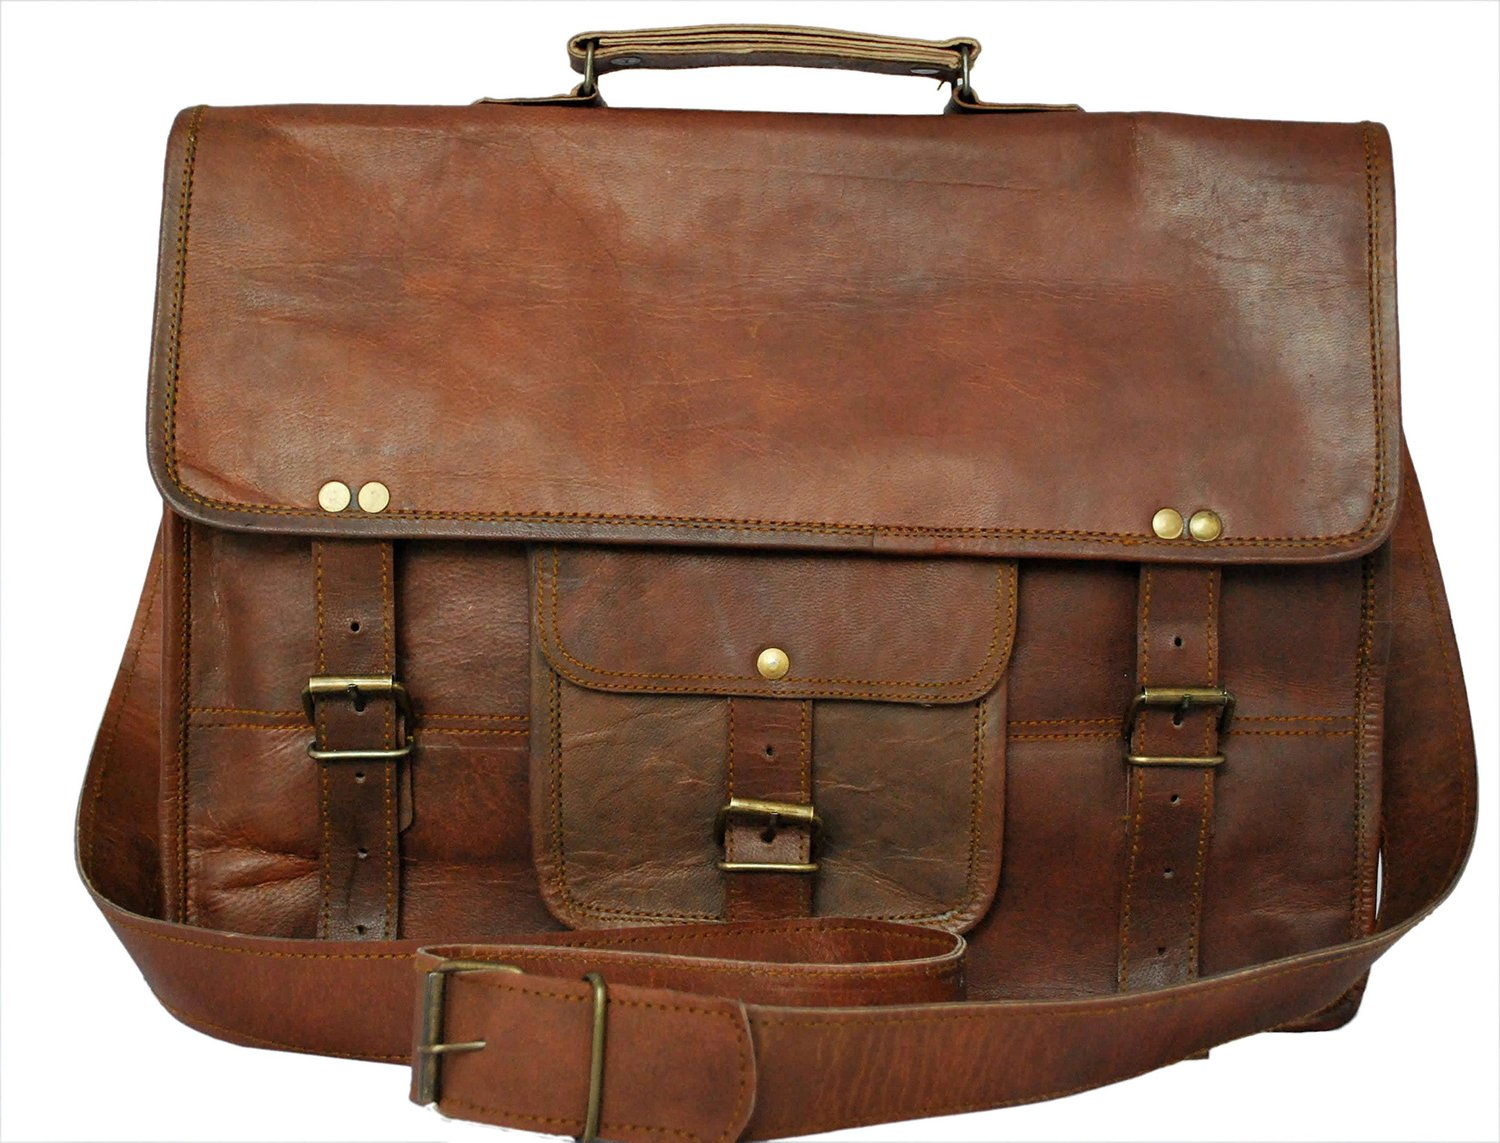 Rustic Town Genuine Leather Laptop Bag Leather Messenger bag 15